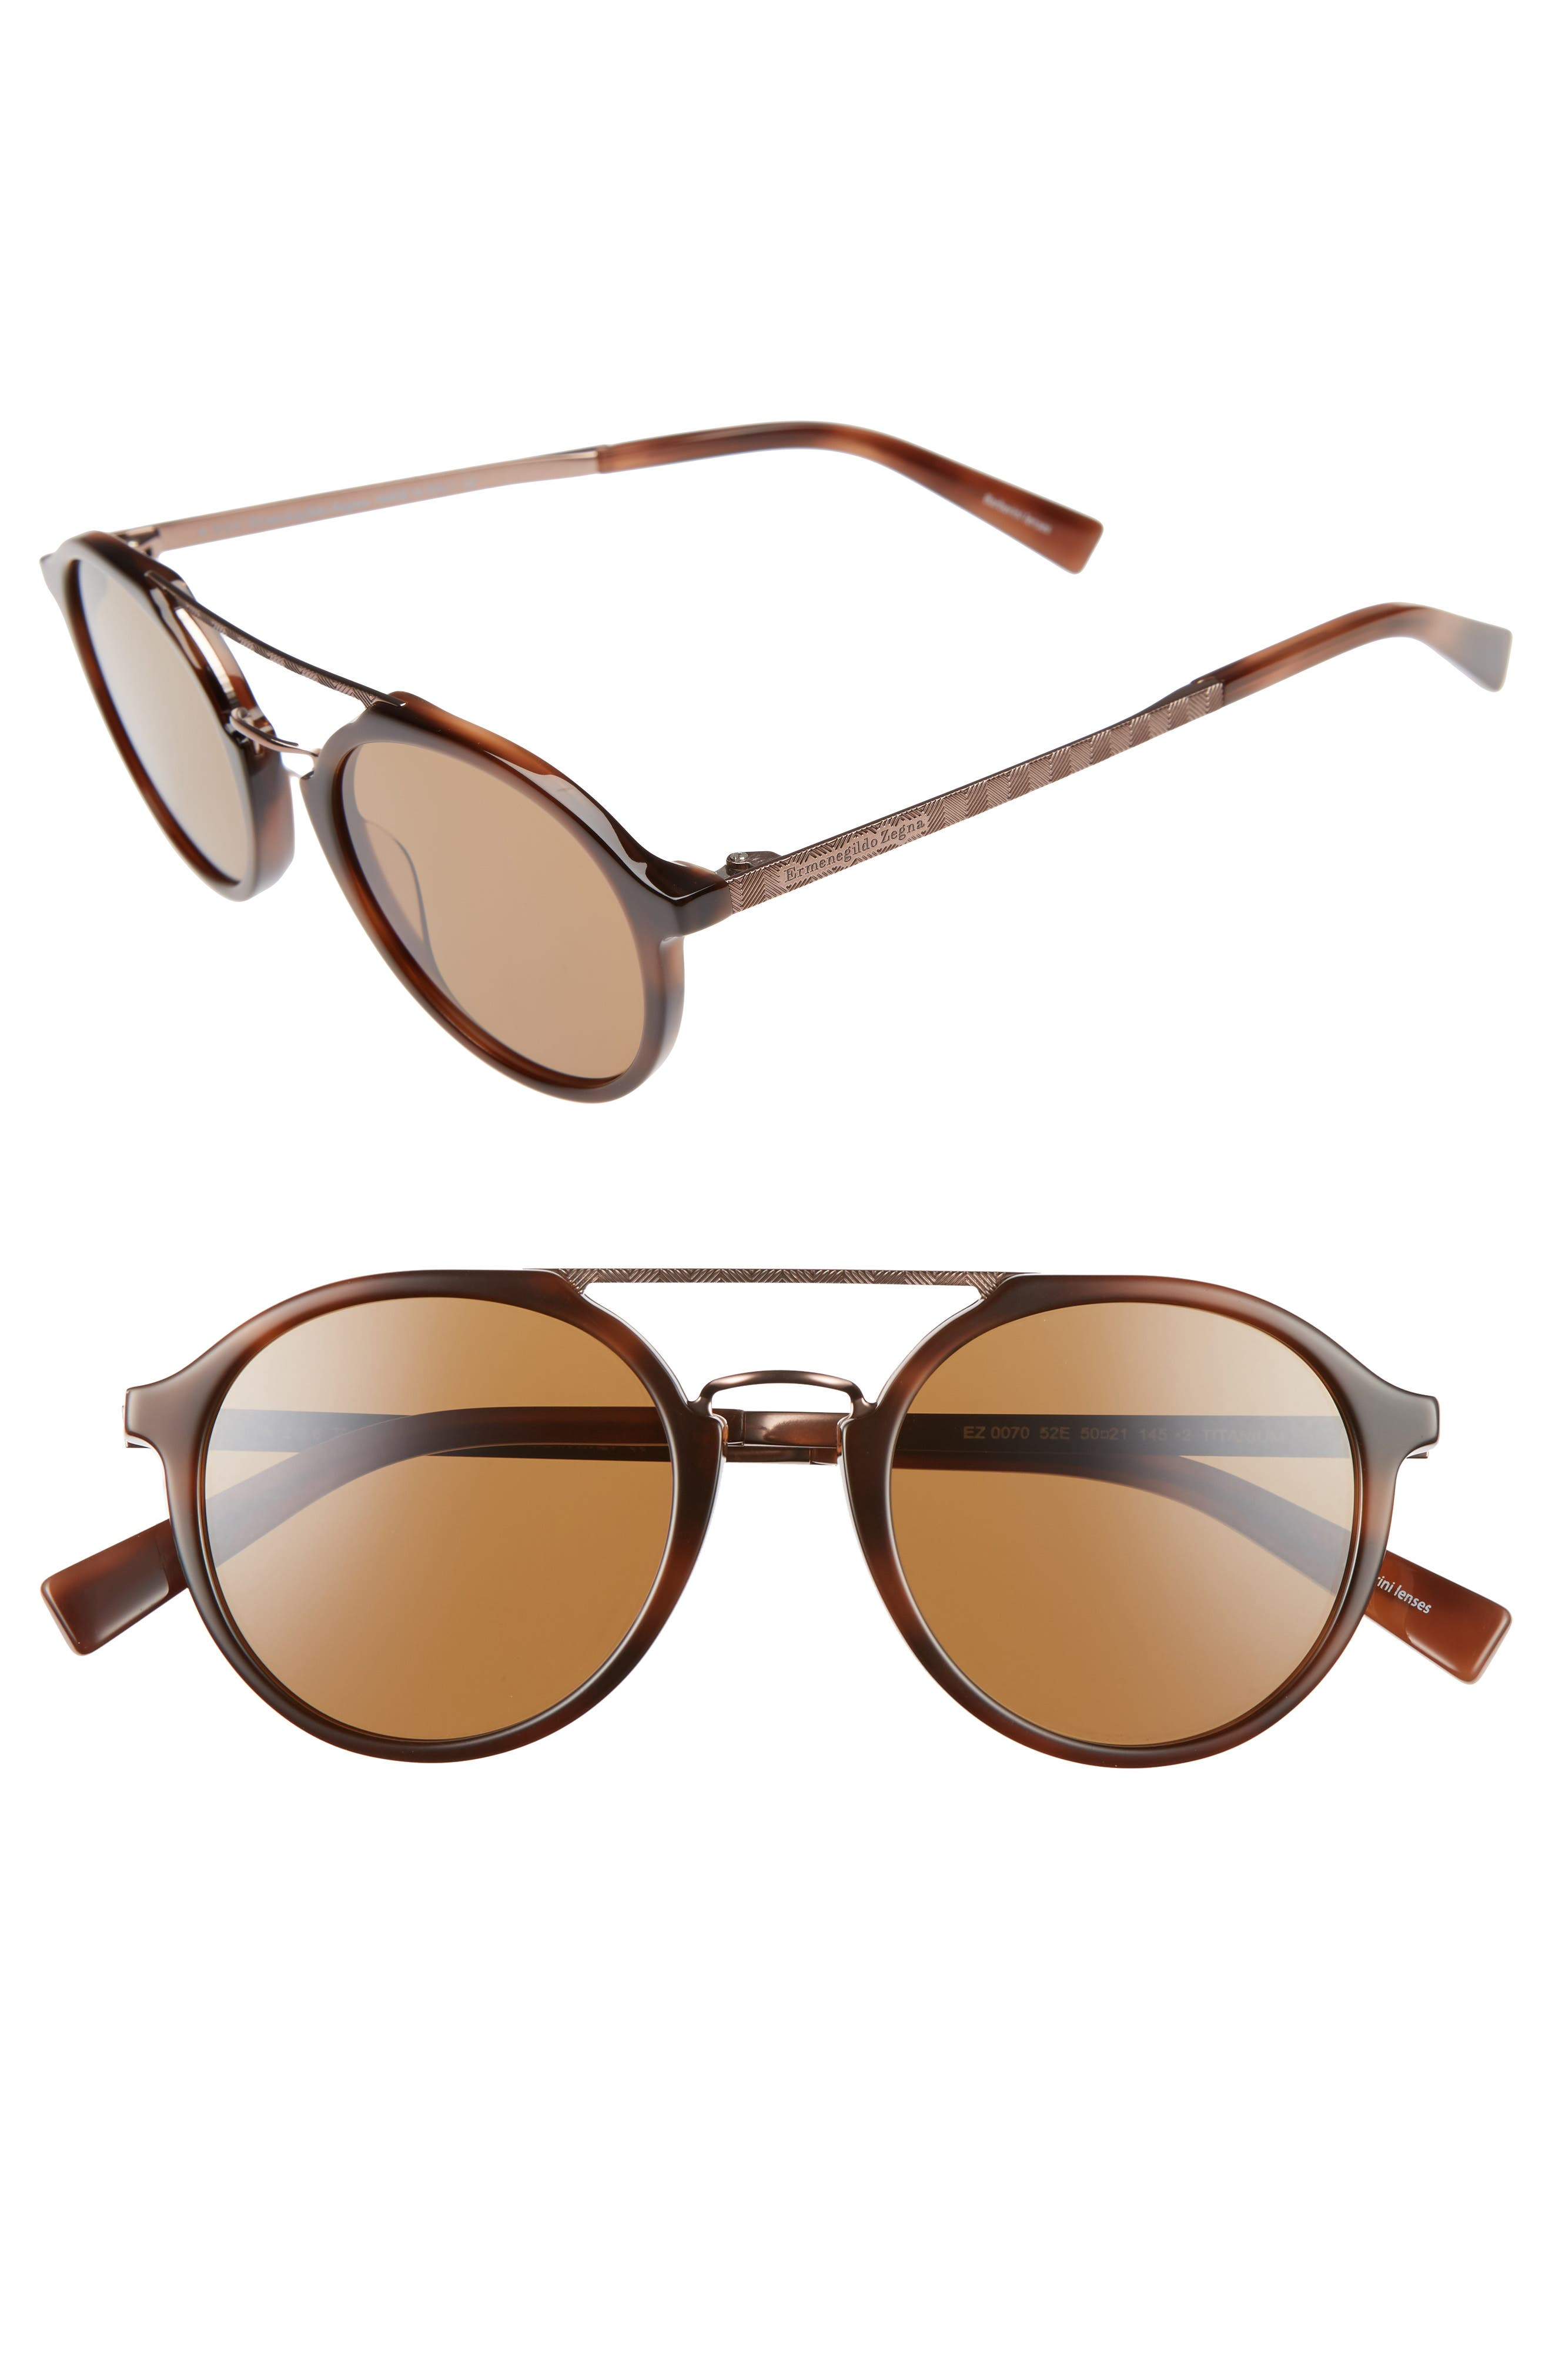 Retro 50mm Sunglasses,                             Main thumbnail 1, color,                             HAVANA/ LIGHT BRONZE/ BROWN